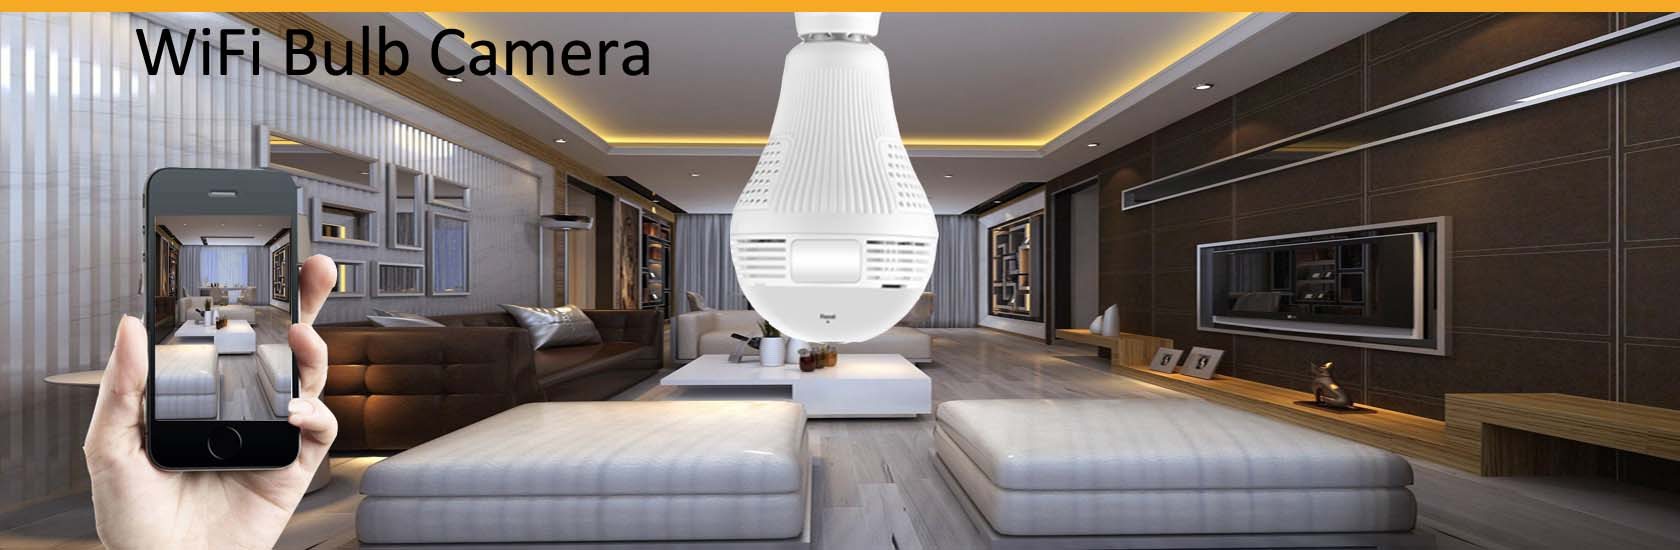 3 WiFi Bulb Camera VF-CB200